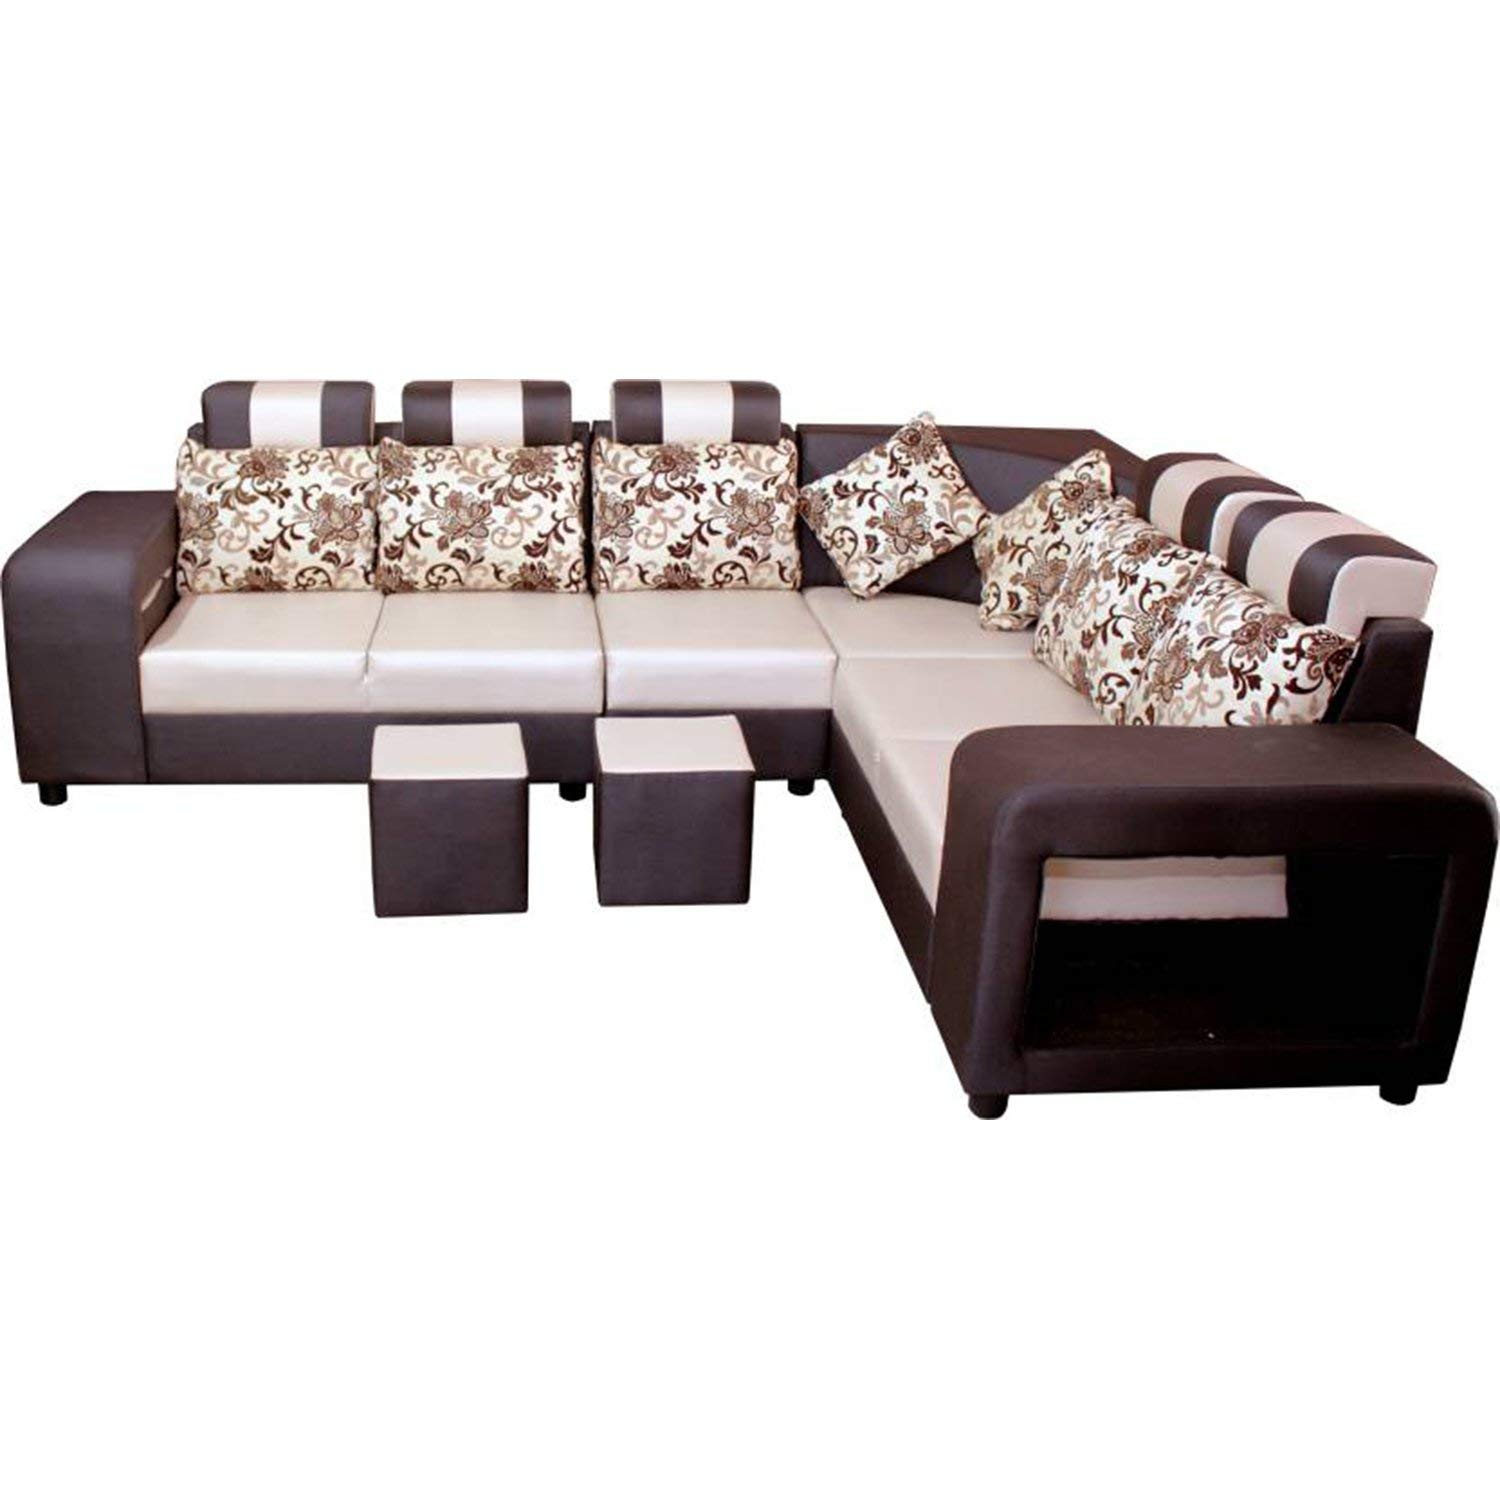 Maktur l shape sofa designs latest  6 Seater L Shape Sectional Sofa Set with Puffy Dark Brown